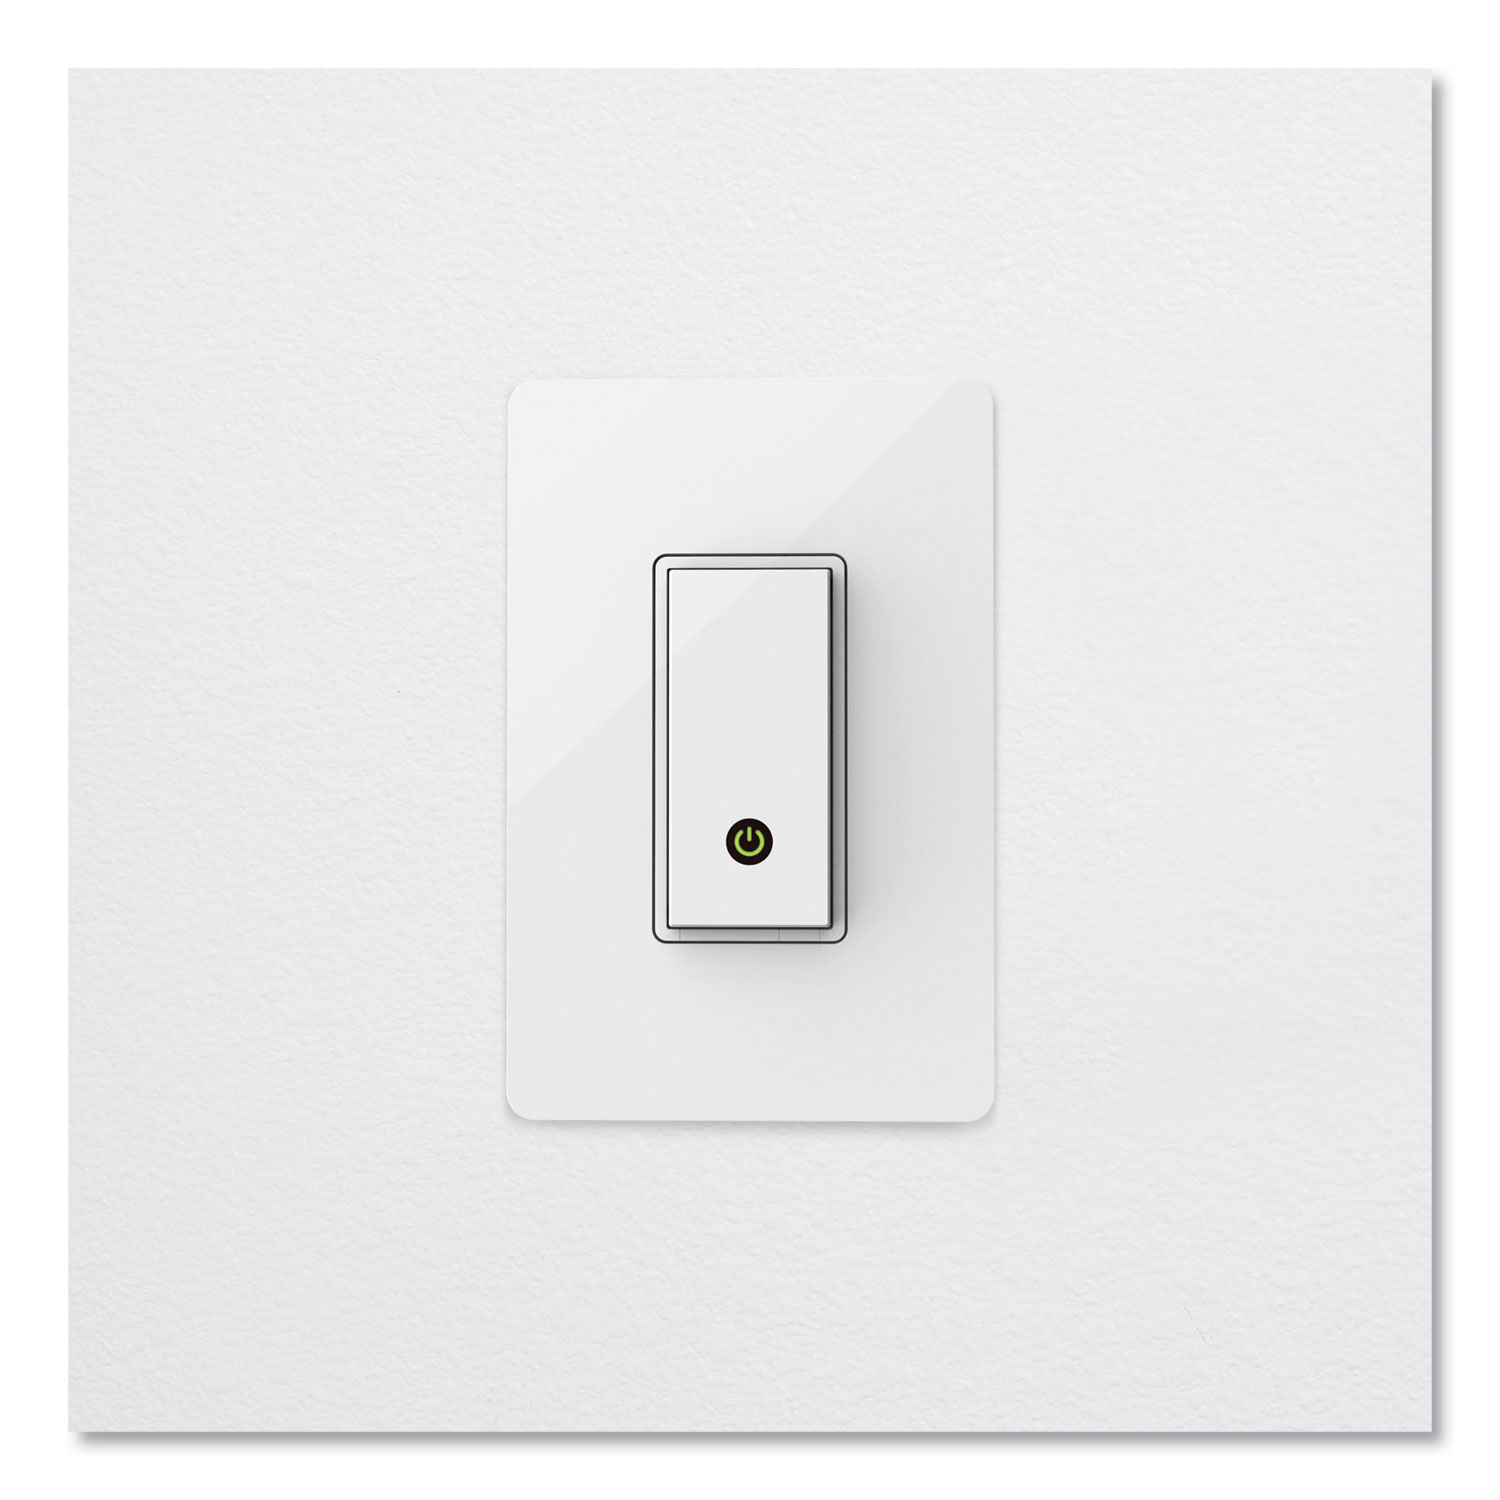 Light Switch, 5.1″ X 3.3″ X 3.3″, 110 V